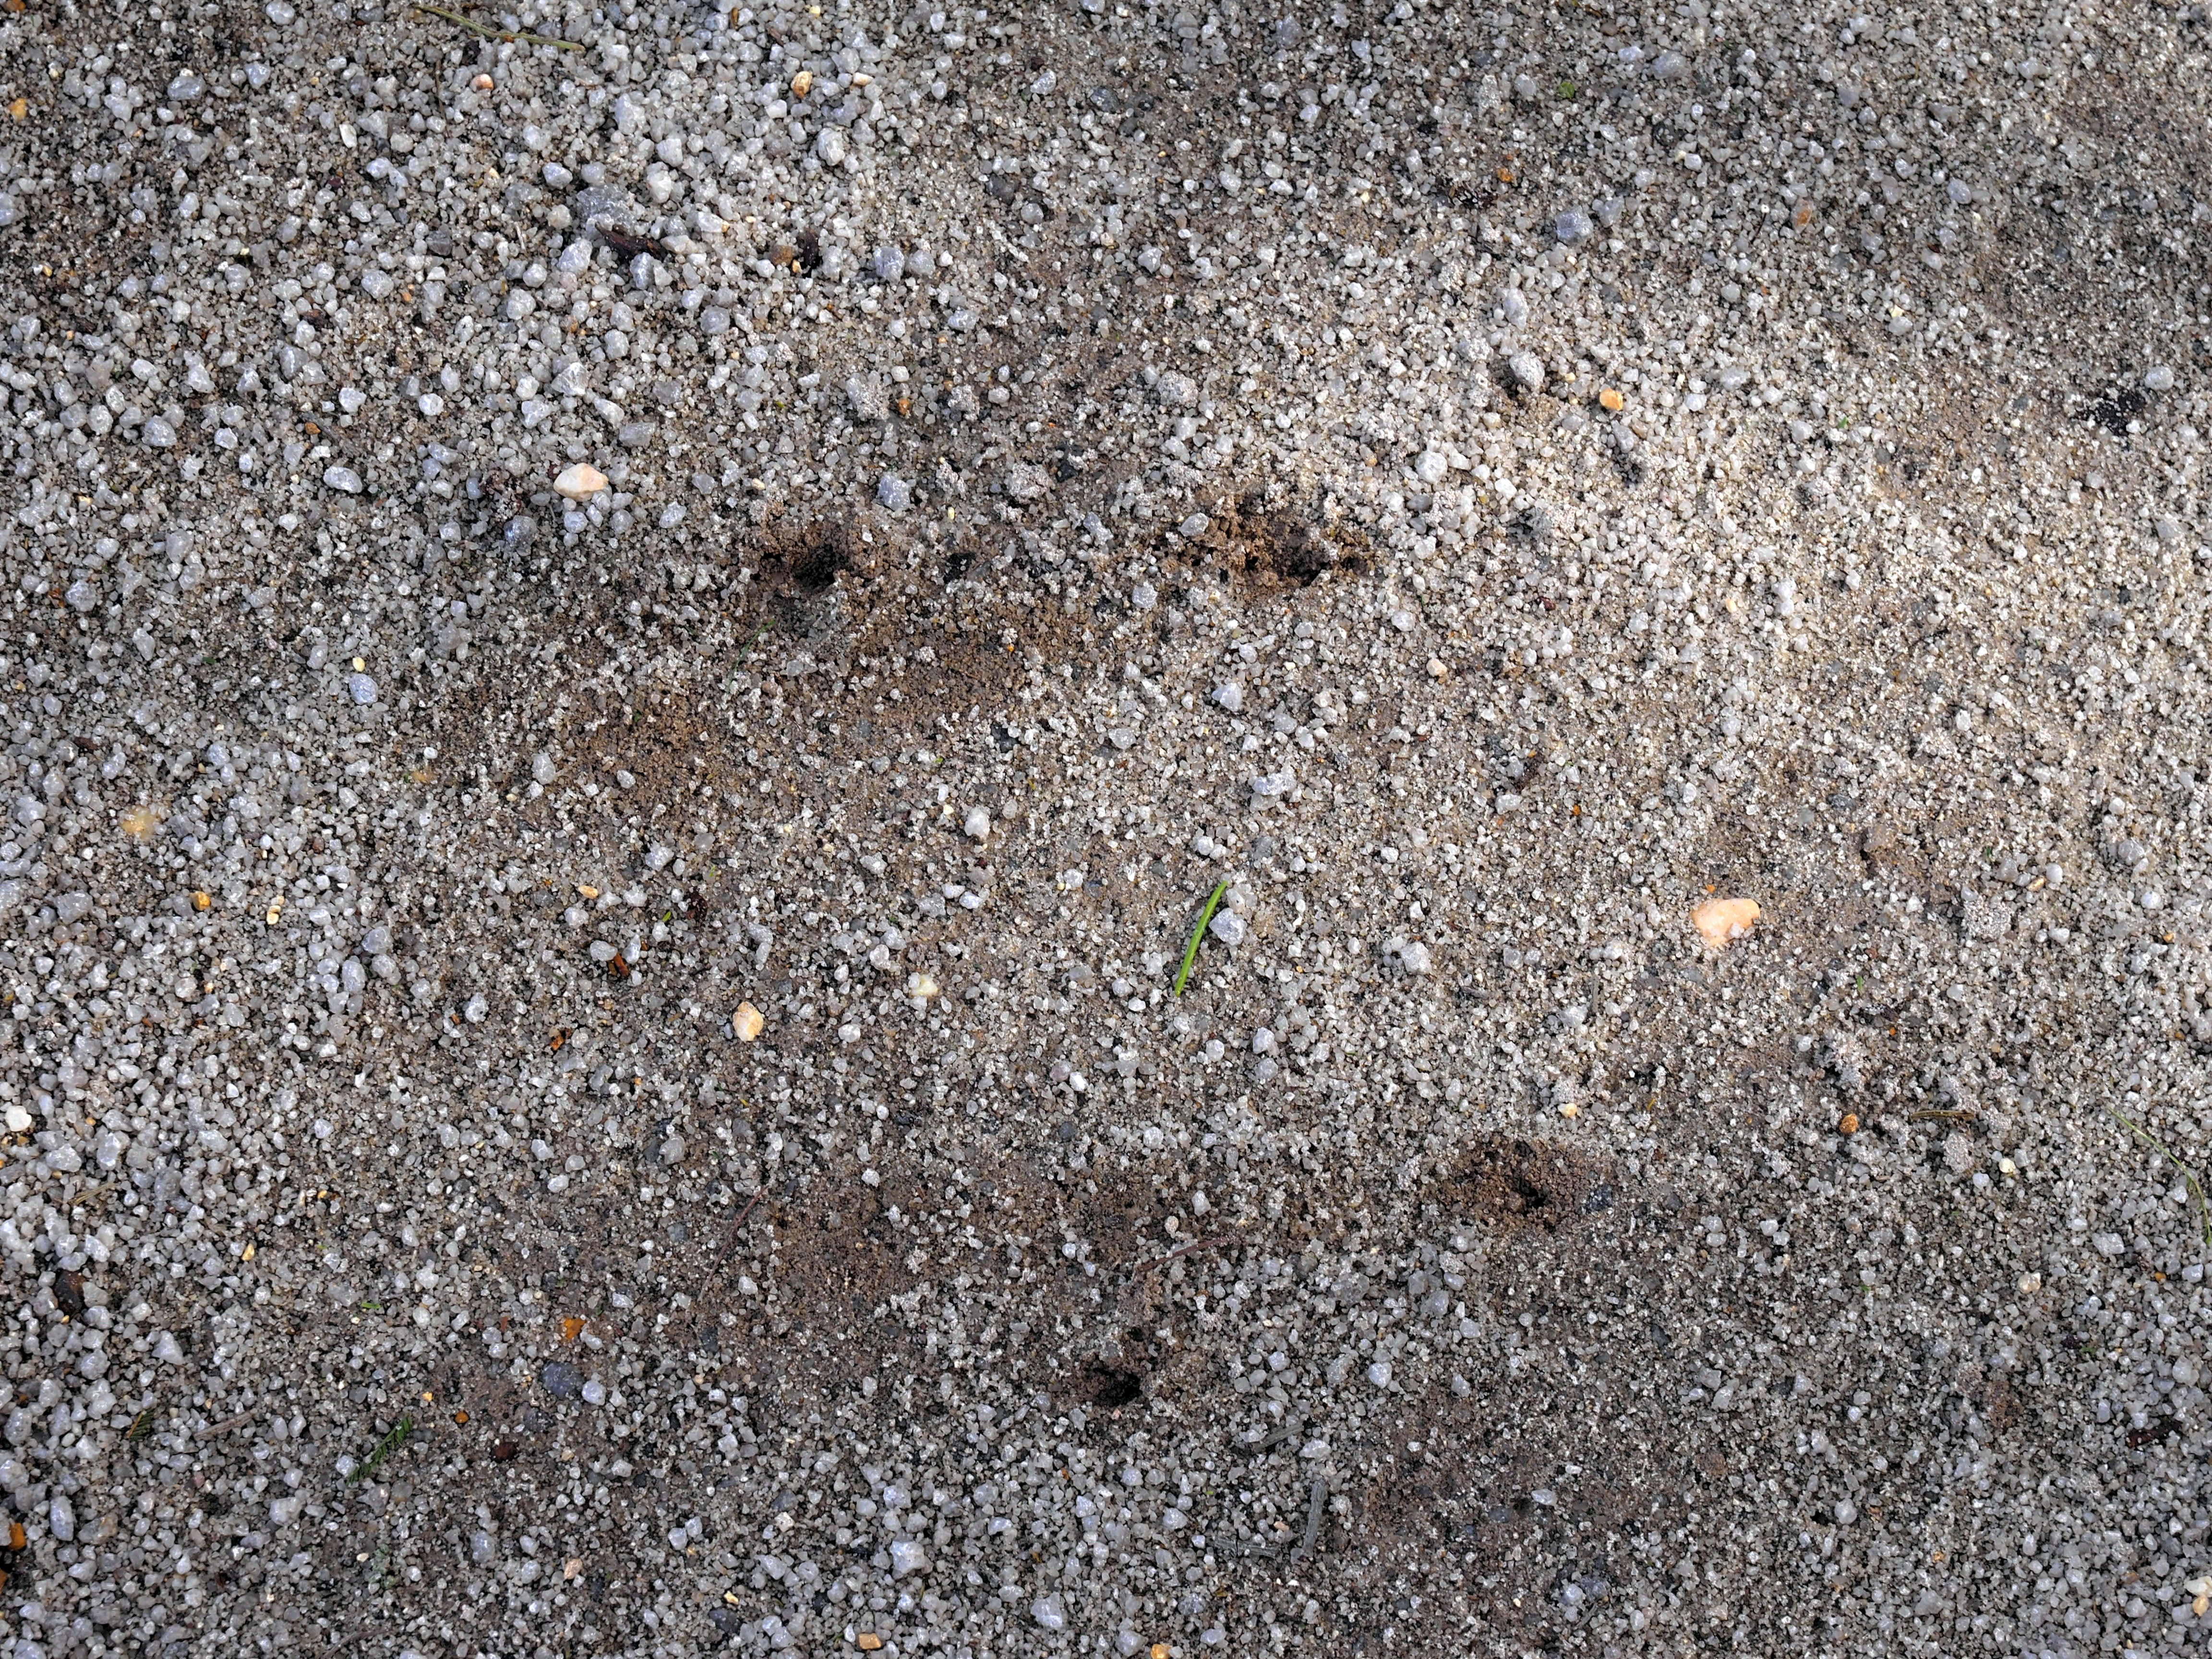 Kangaroo-tracks-3.jpeg